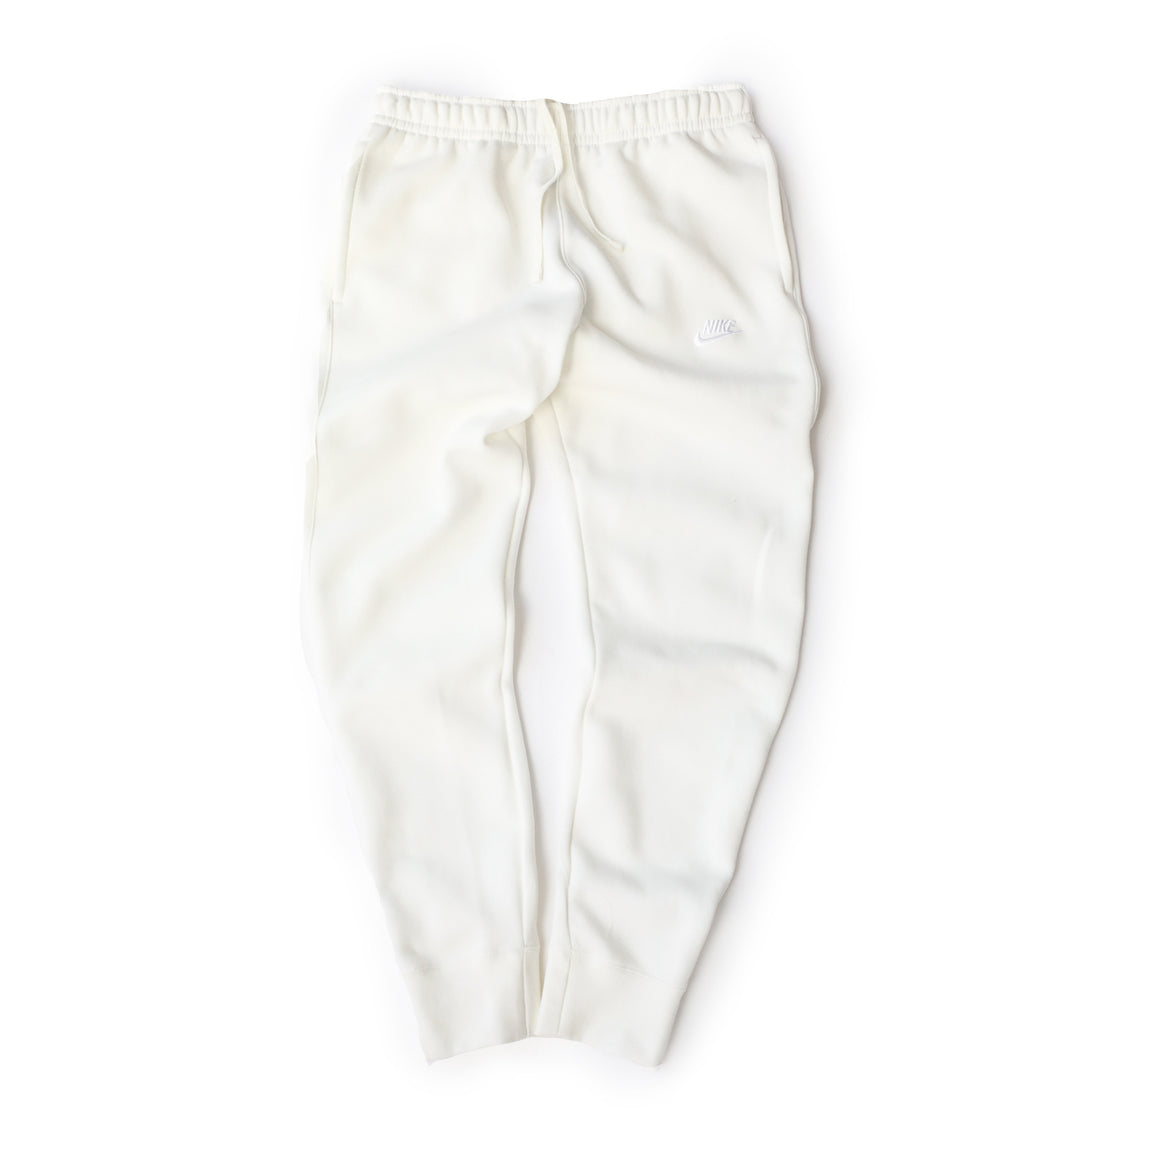 Nike Sportswear Club Fleece Pants (Sail/Sail-White) - Nike Sportswear Club Fleece Pants (Sail/Sail-White) -